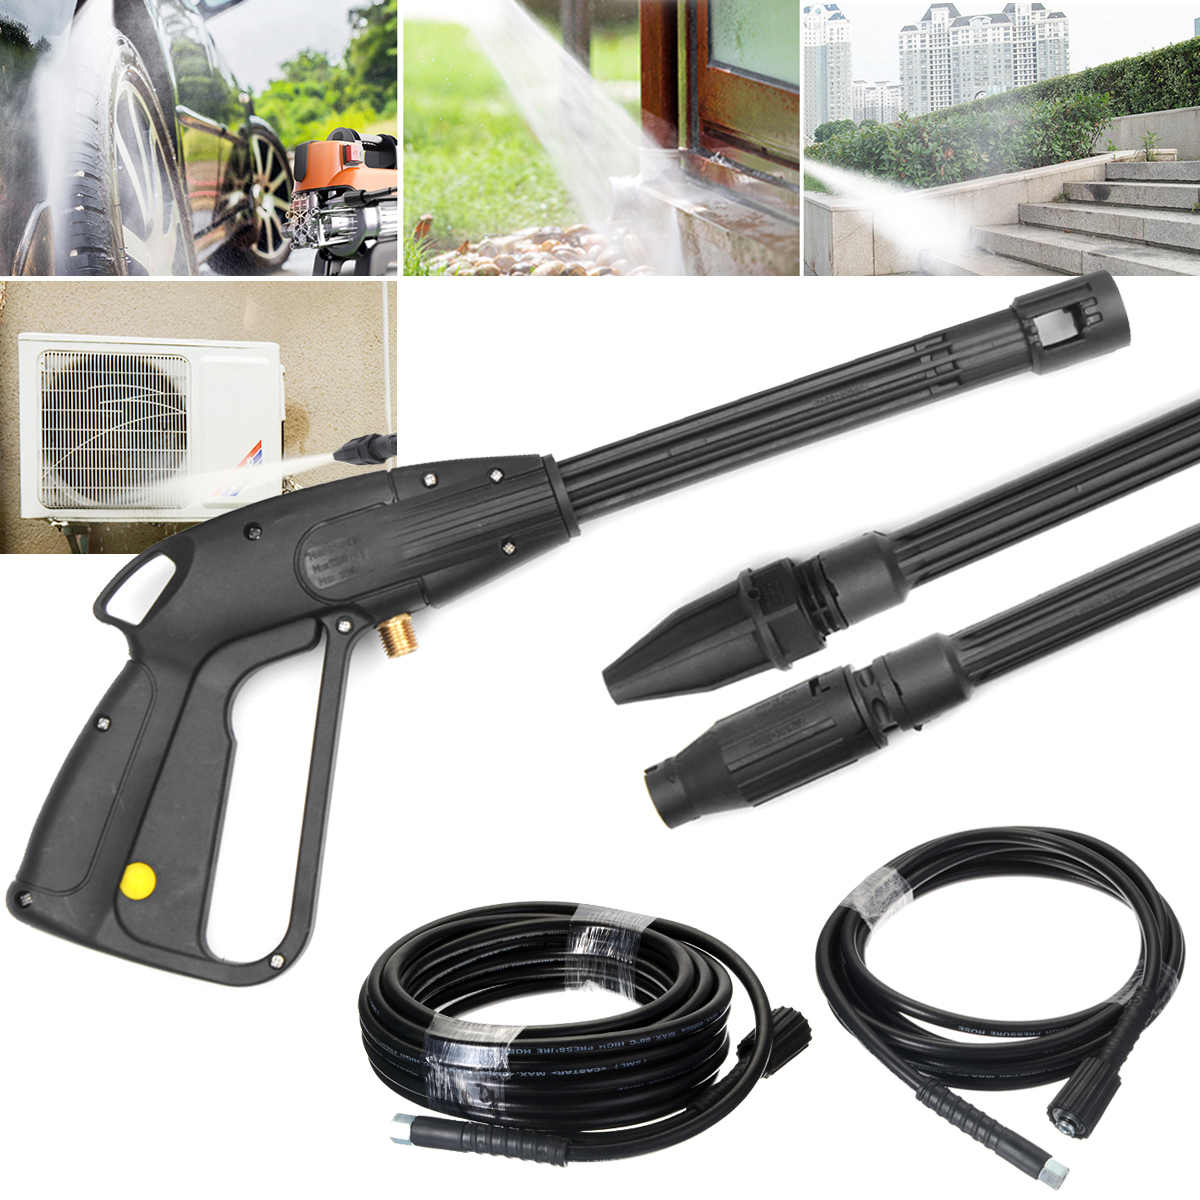 Hoge Druk Power Washer Spray Nozzle Water-Gun Lance/5/10 M Washer Extension Jet Slang m22XM14 Connector Vervanging